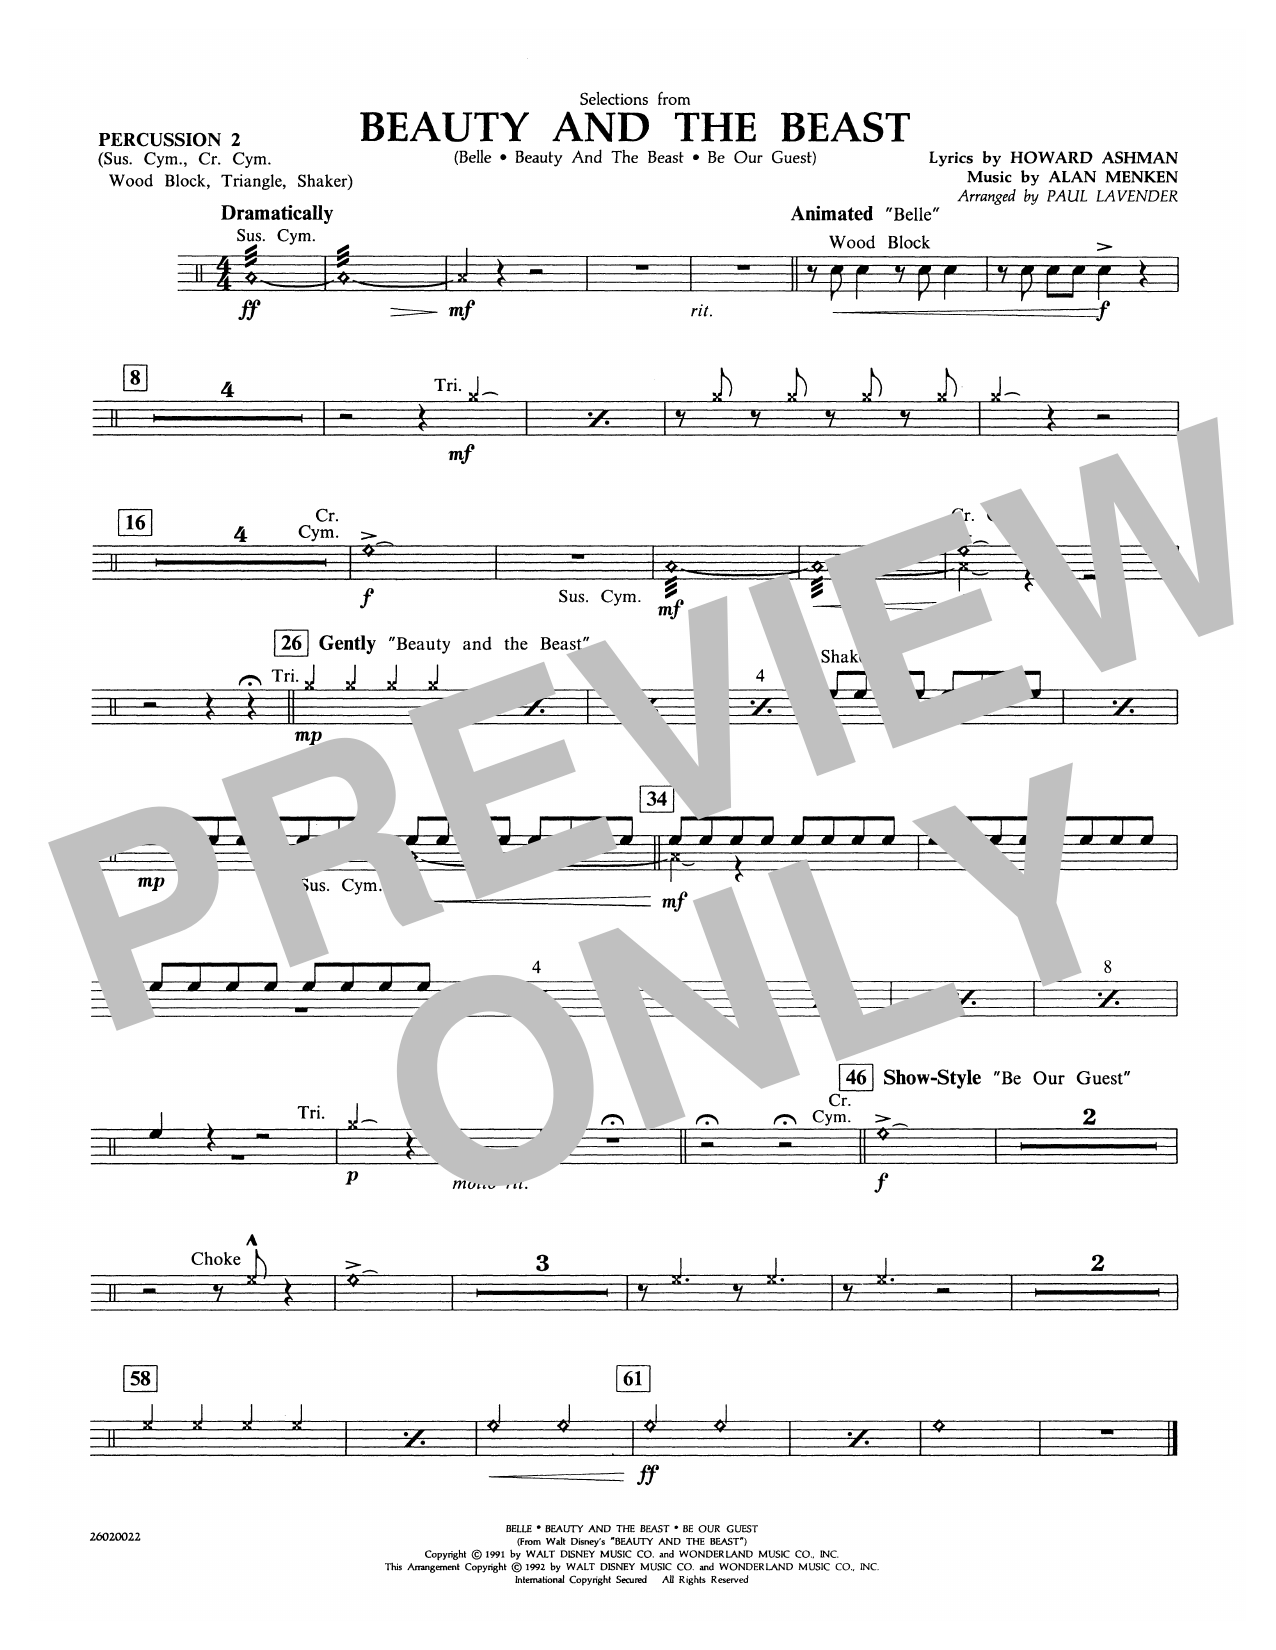 Selections from Beauty and the Beast - Percussion 2 Sheet Music